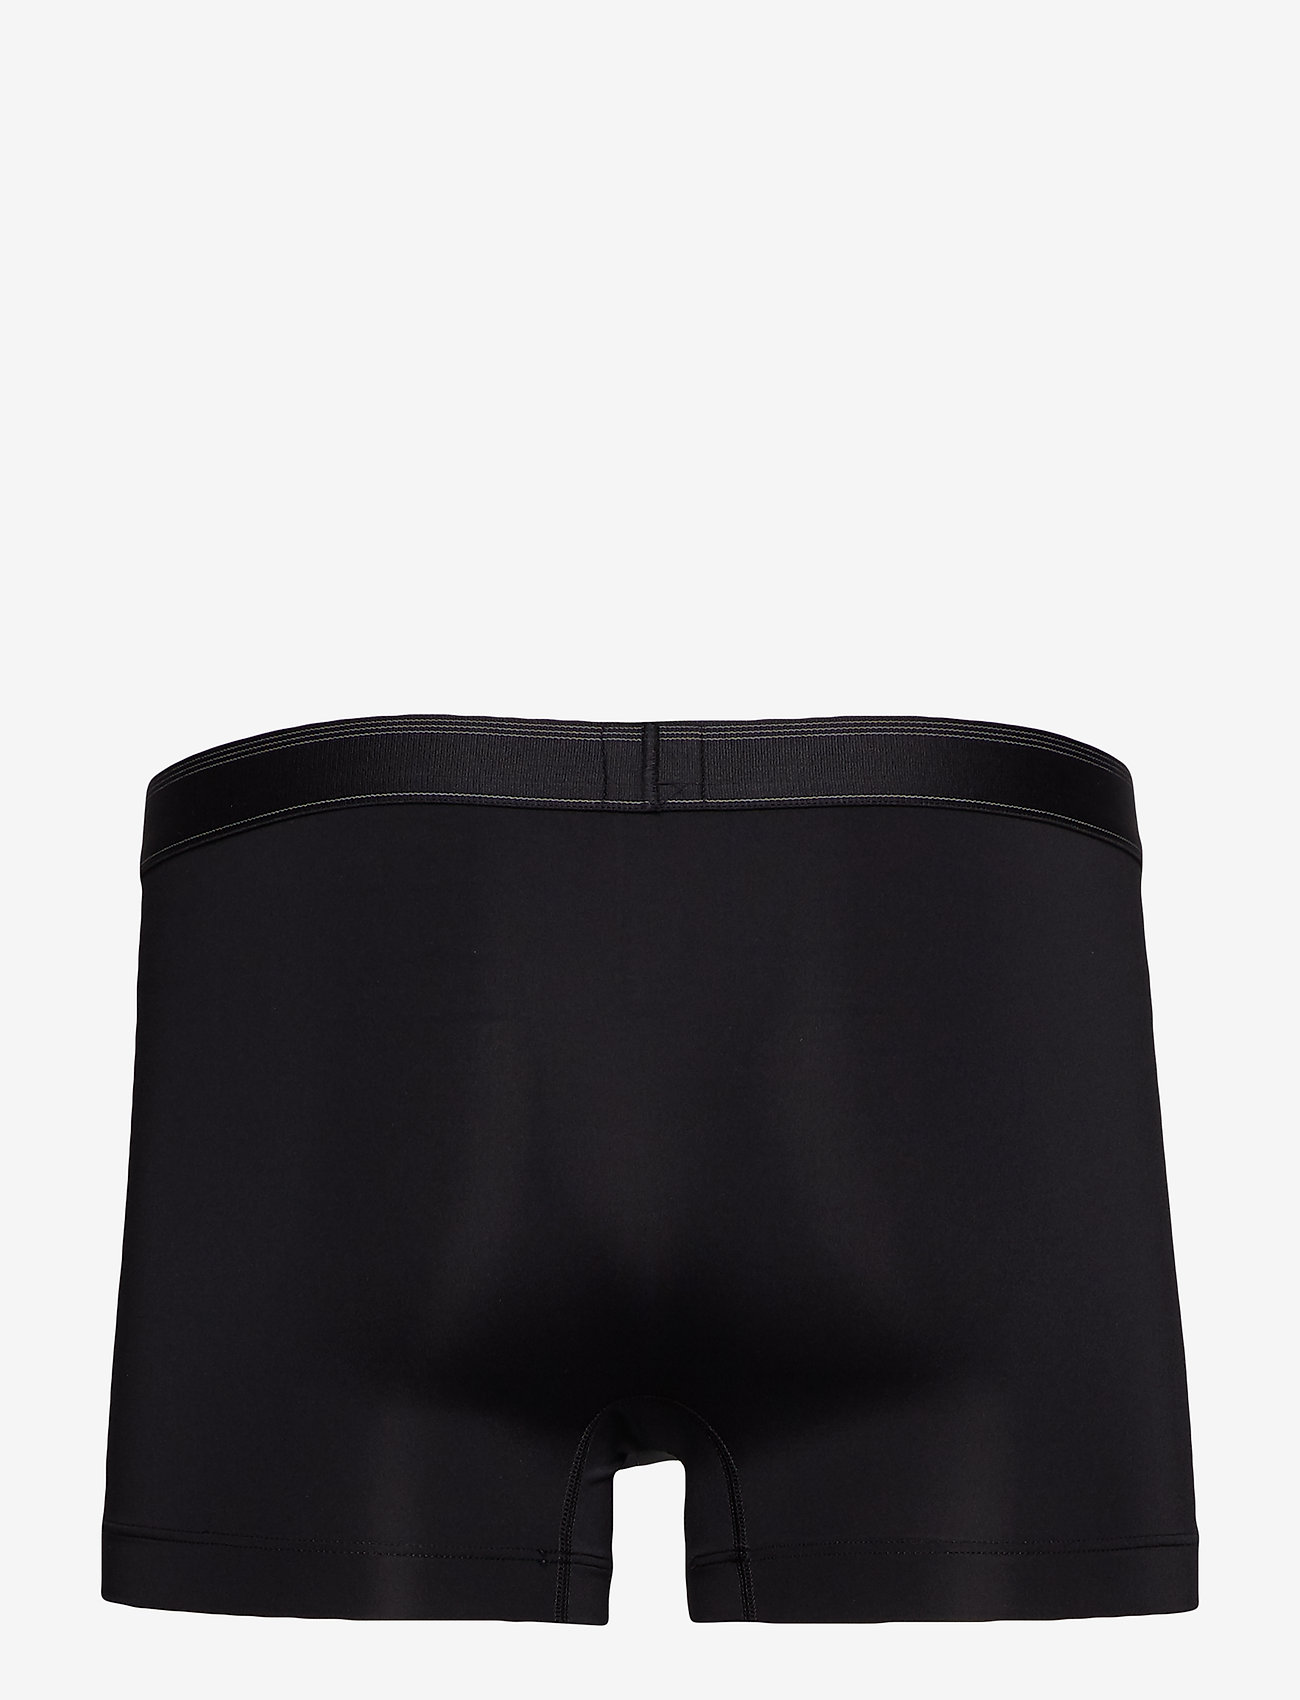 Low Rise Shorts (Black) - Schiesser JkJzX8